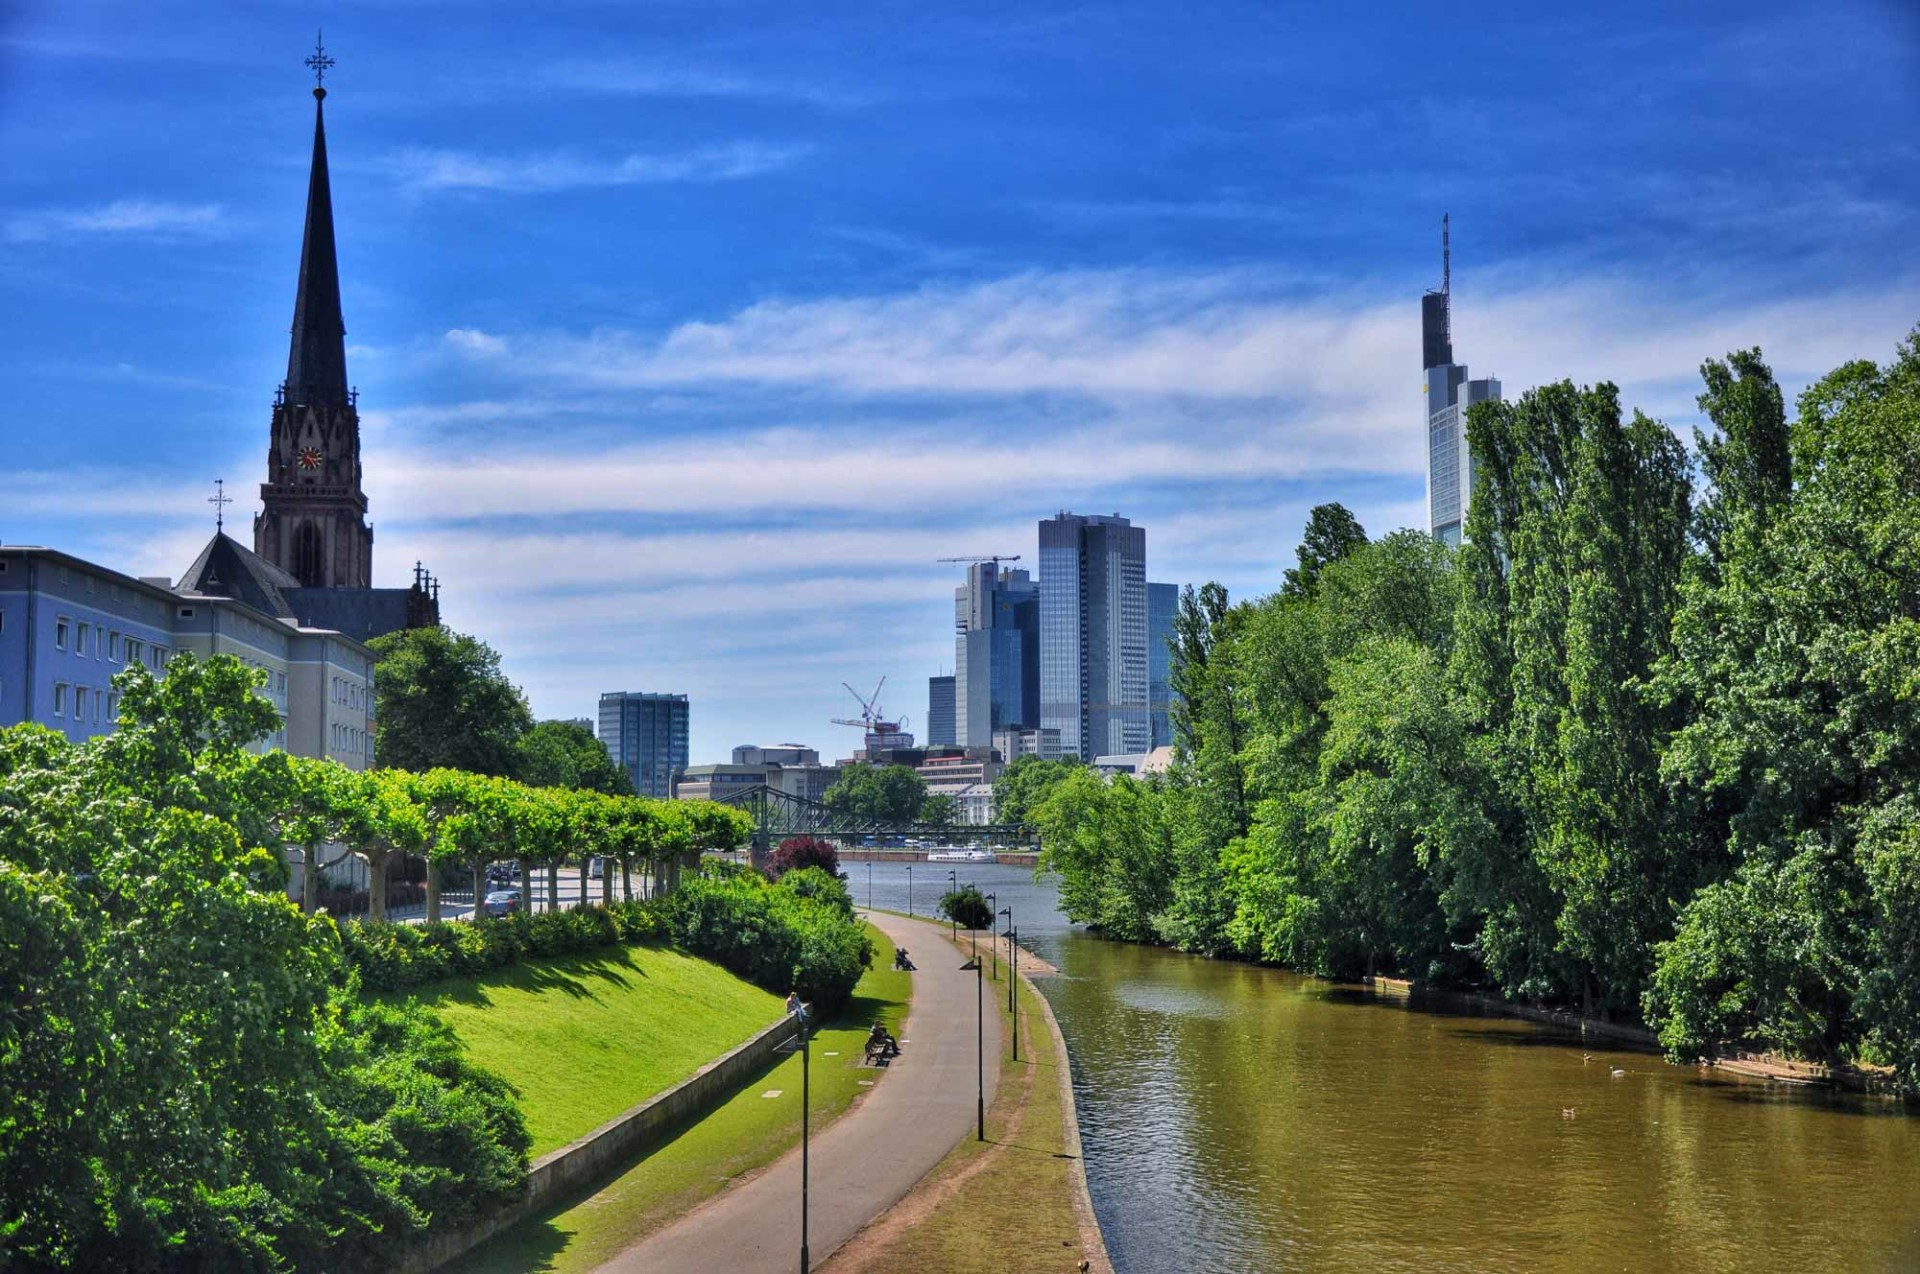 Main River throught Frankfurt